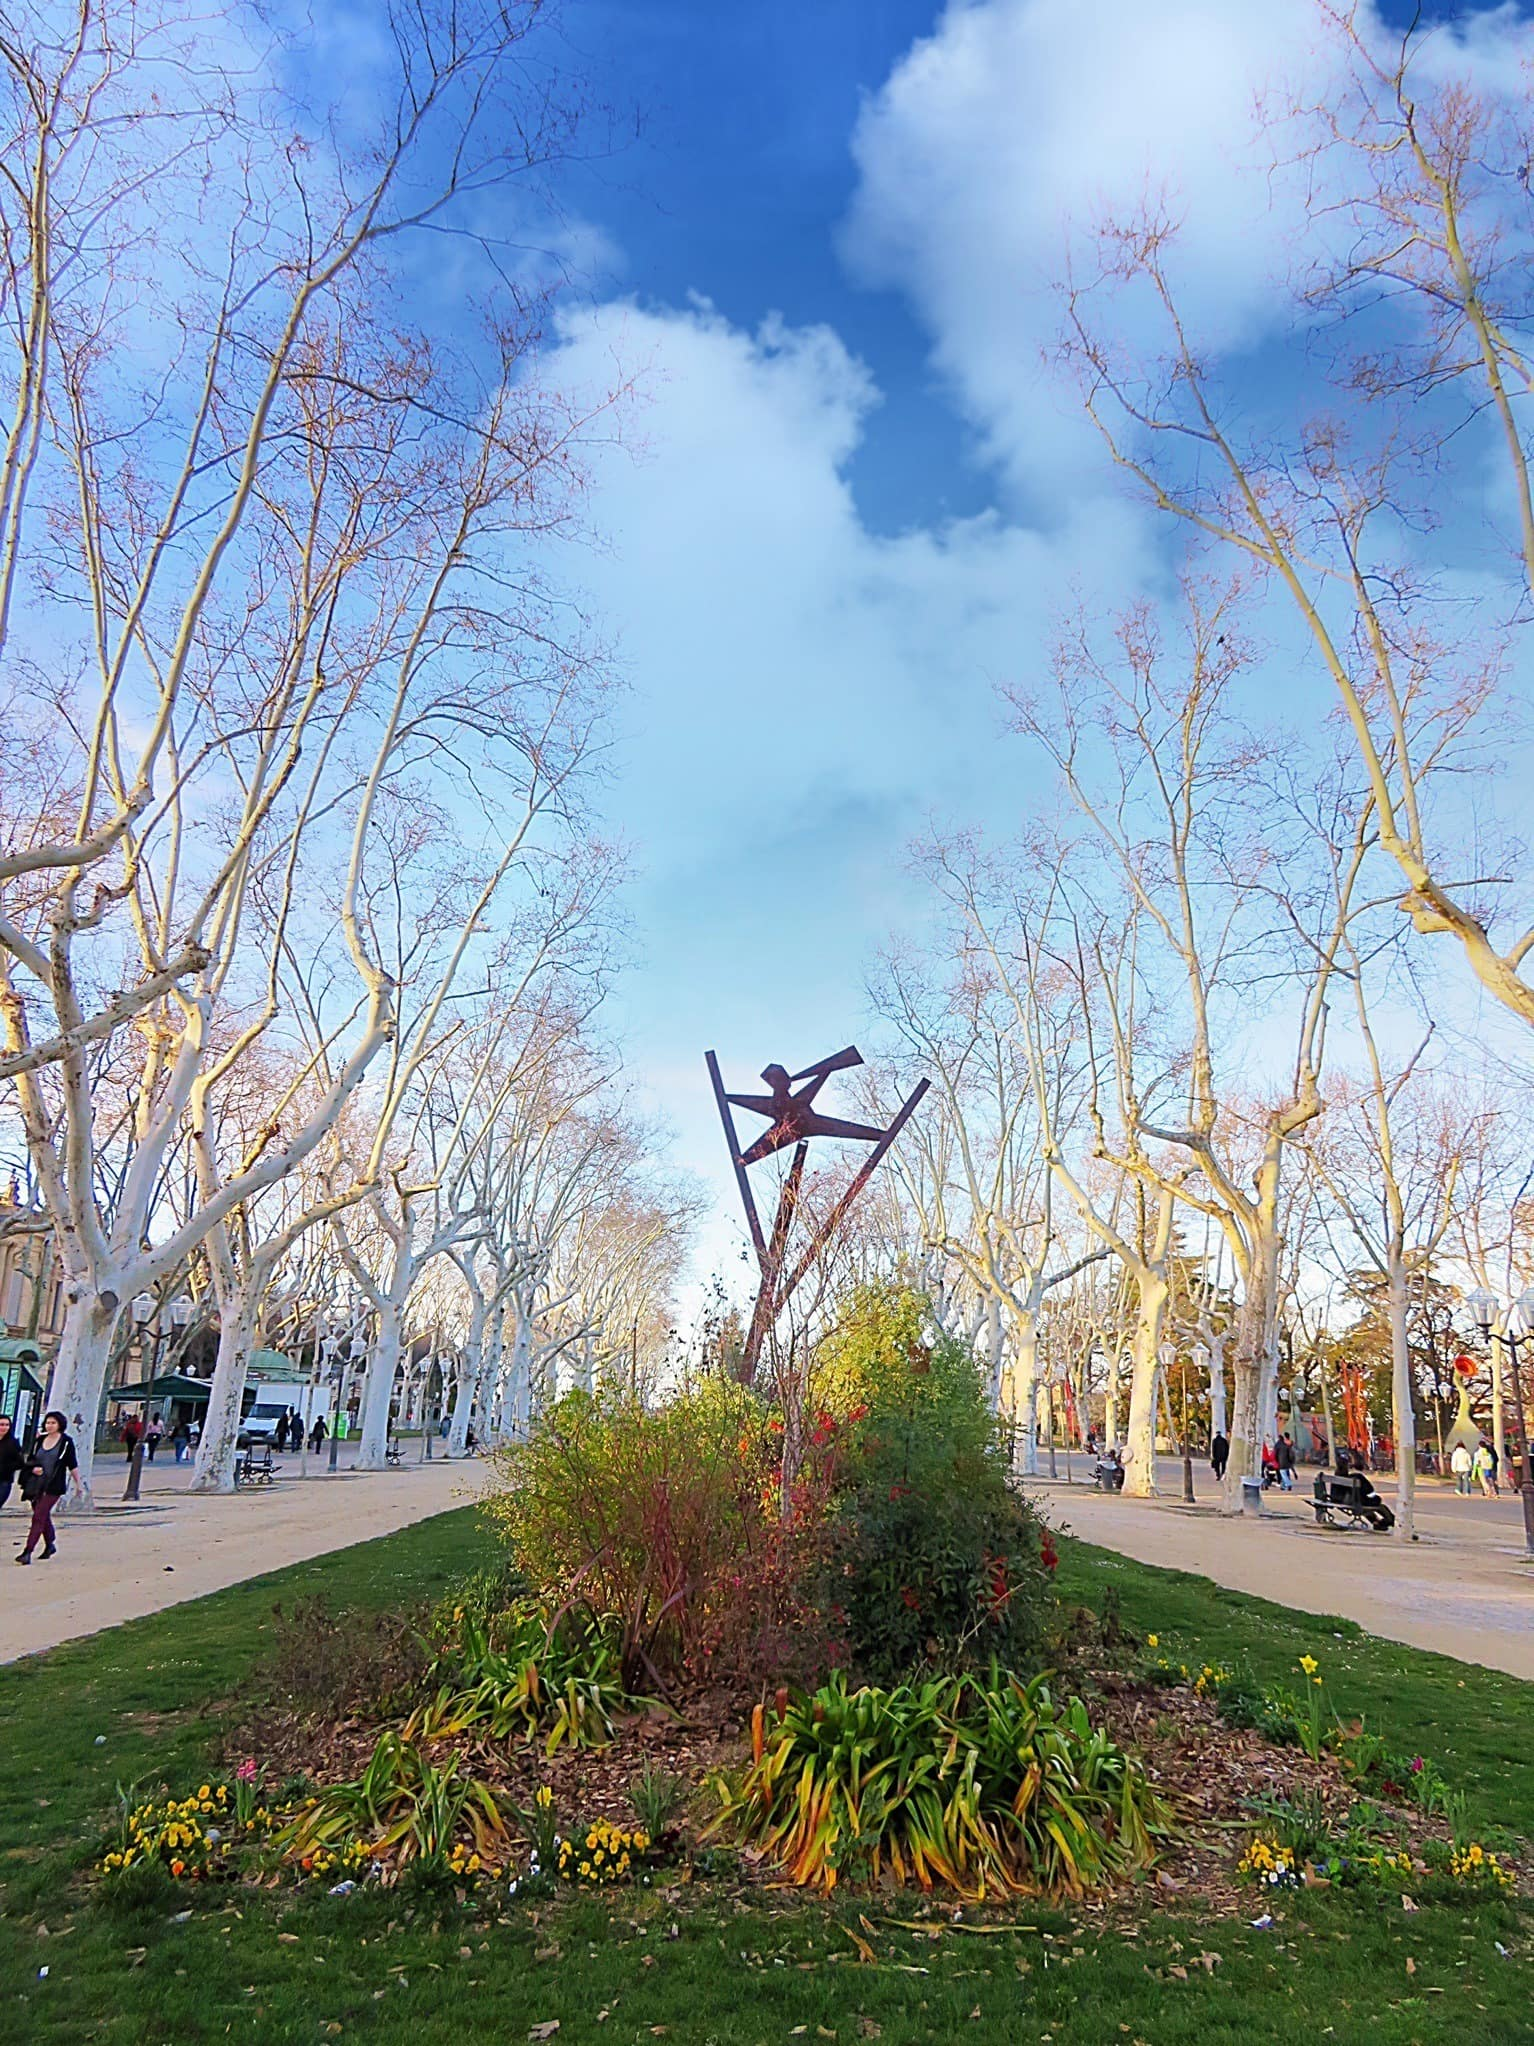 The beautiful Esplanade Charles de Gaulle is a beautiful place for a stroll in Montpellier with kids